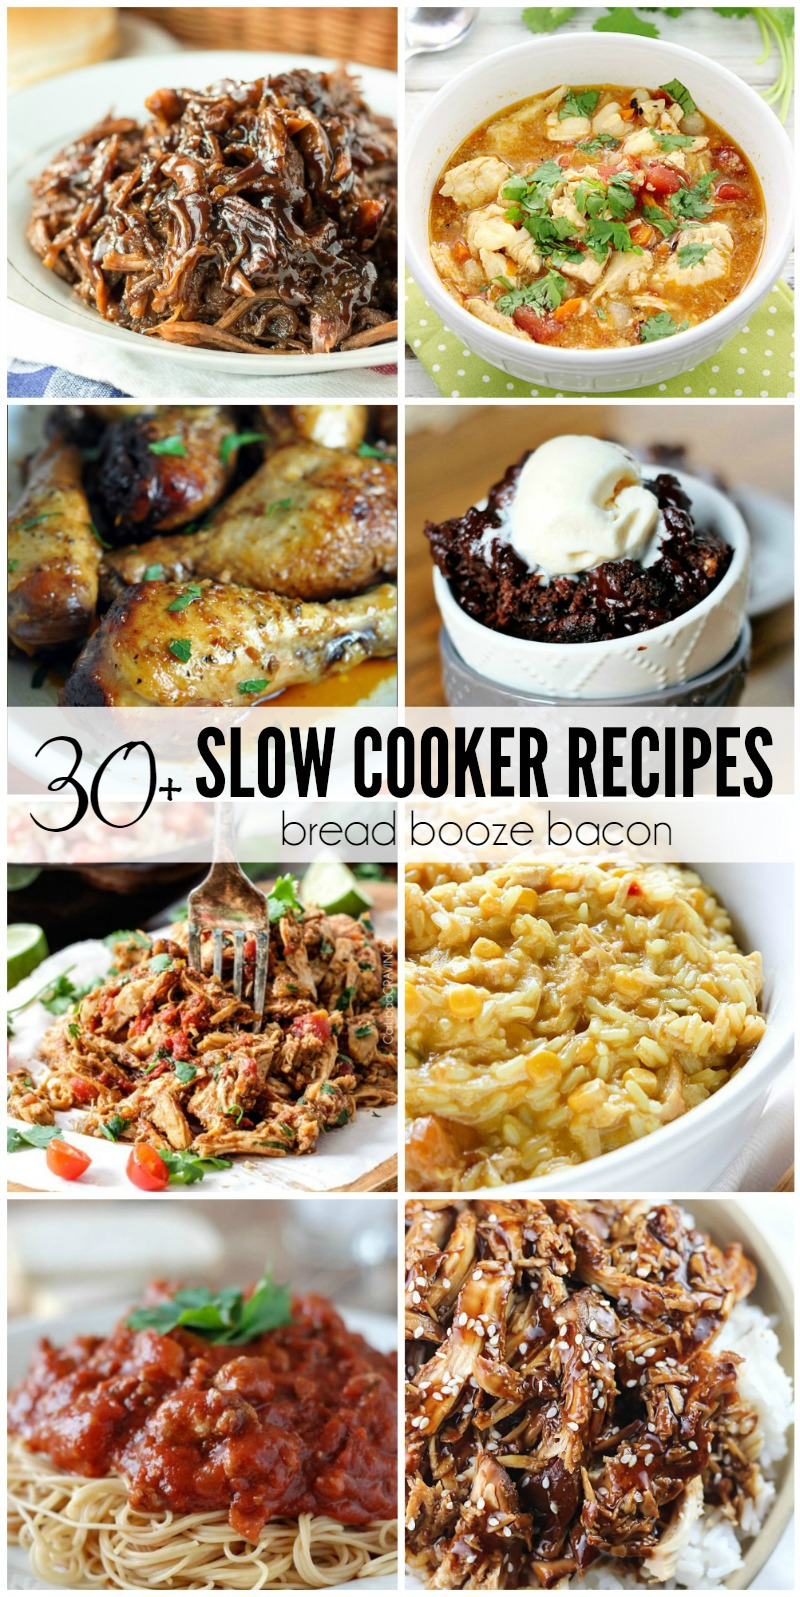 These 30+ Slow Cooker Recipes prove that your crock pot isn't just some relic from the 80's! Get dinner, dessert, or dips on the table in a snap with these killer dishes!